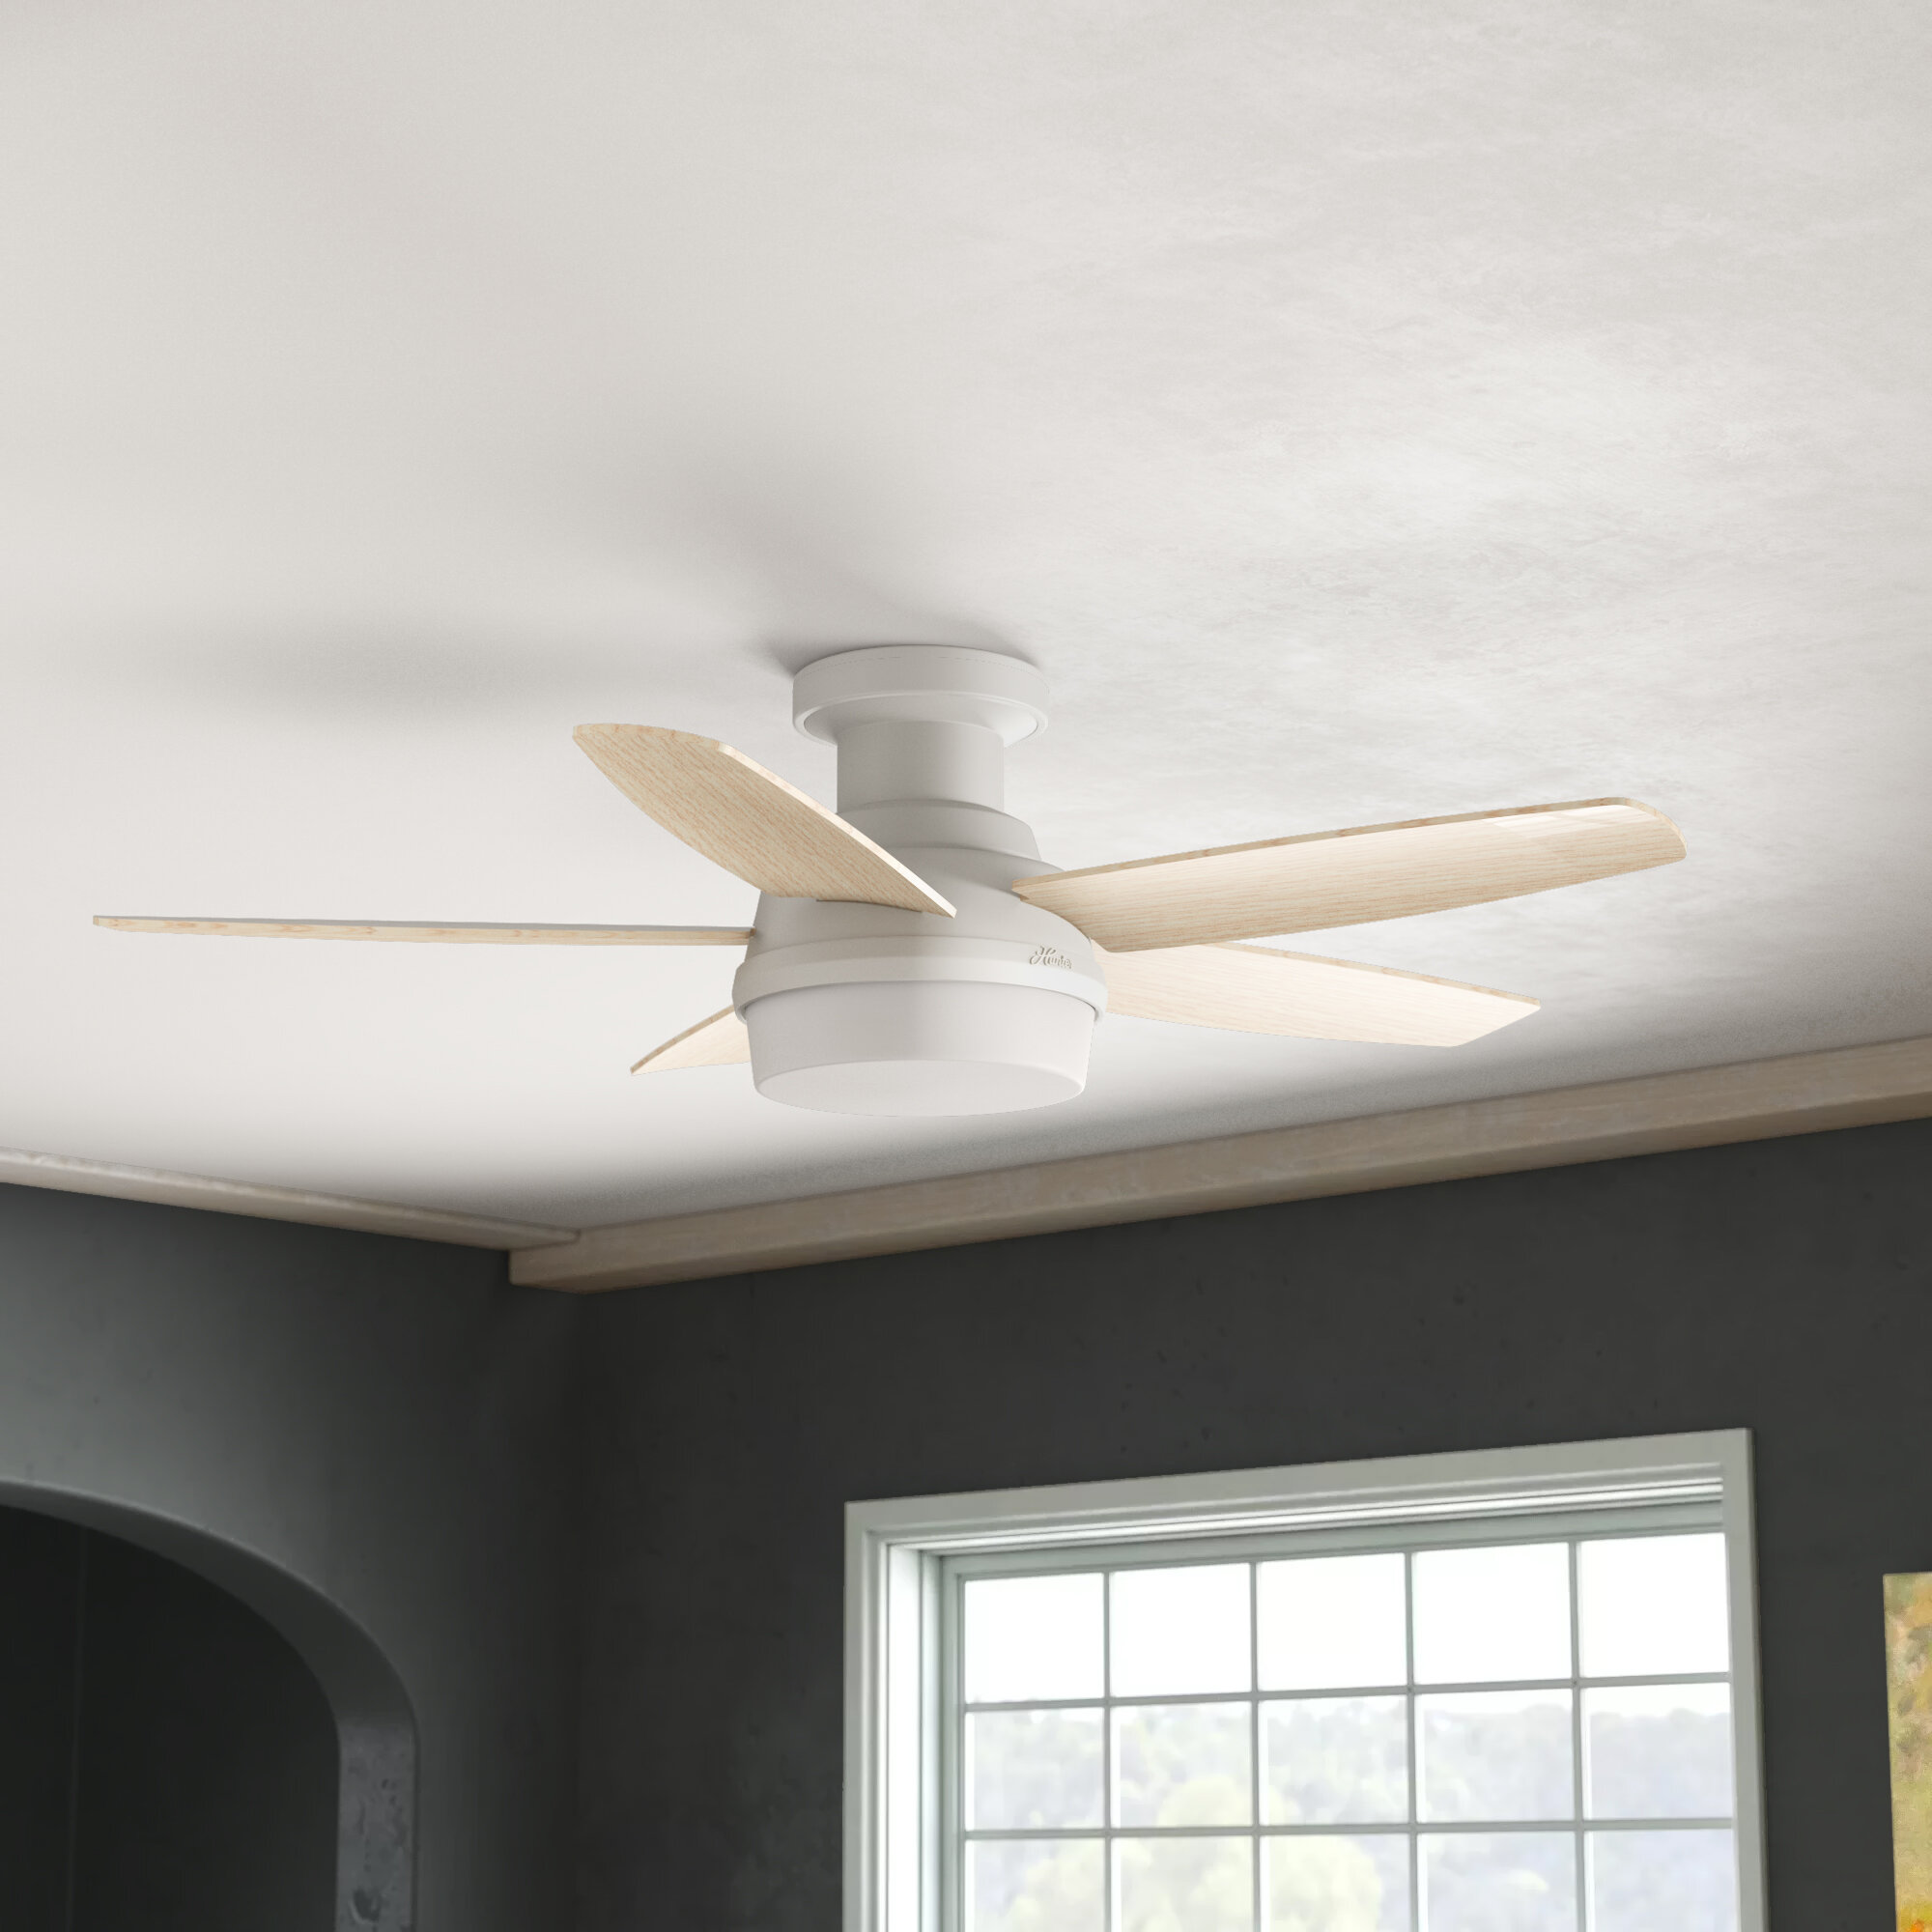 Hunter Fan 48 Avia 5 Blade Led Flush Mount Ceiling Fan With Remote Control And Light Kit Included Reviews